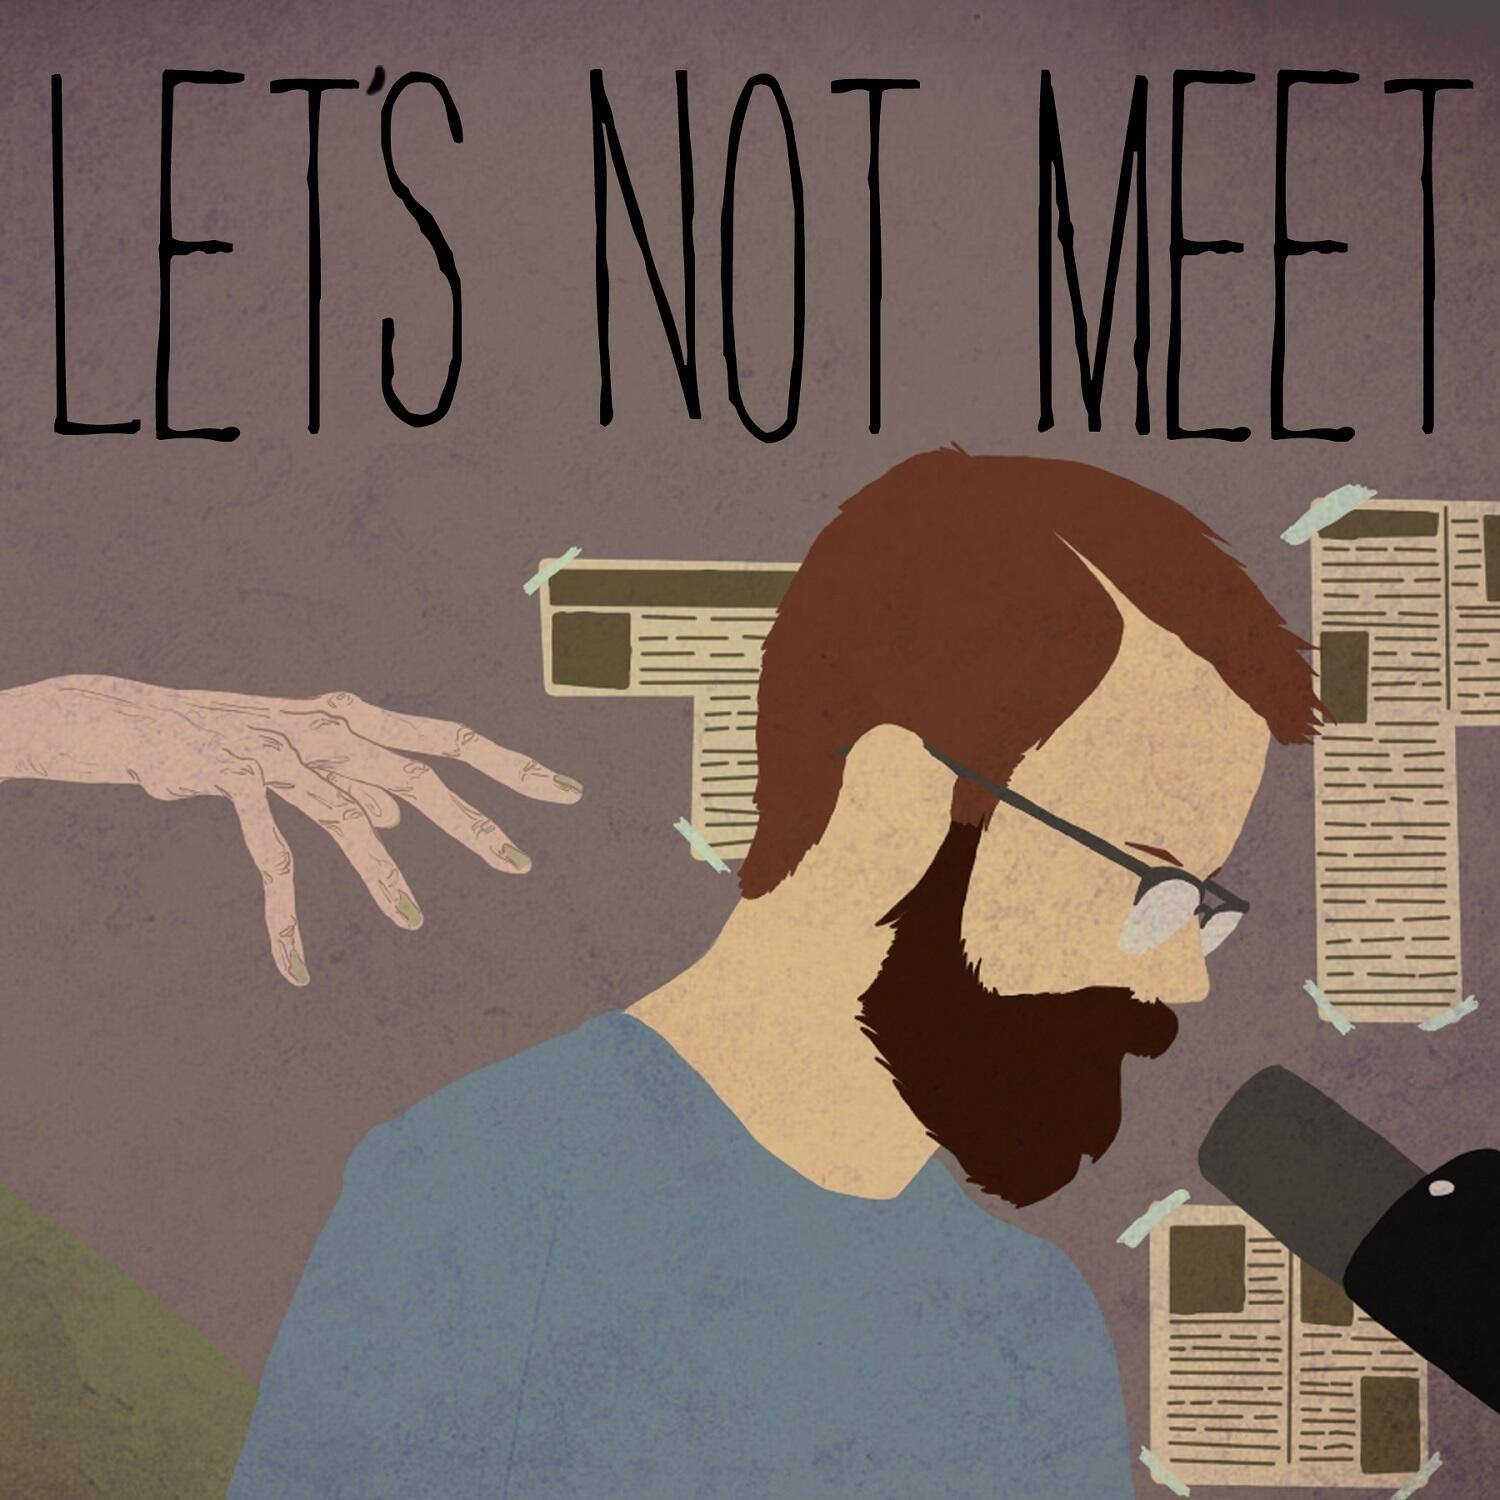 Let S Not Meet A True Horror Podcast 3 creepy letsnotmeet video that will fo*k you up r/letsnotmeet. letsnotmeetpodcast com